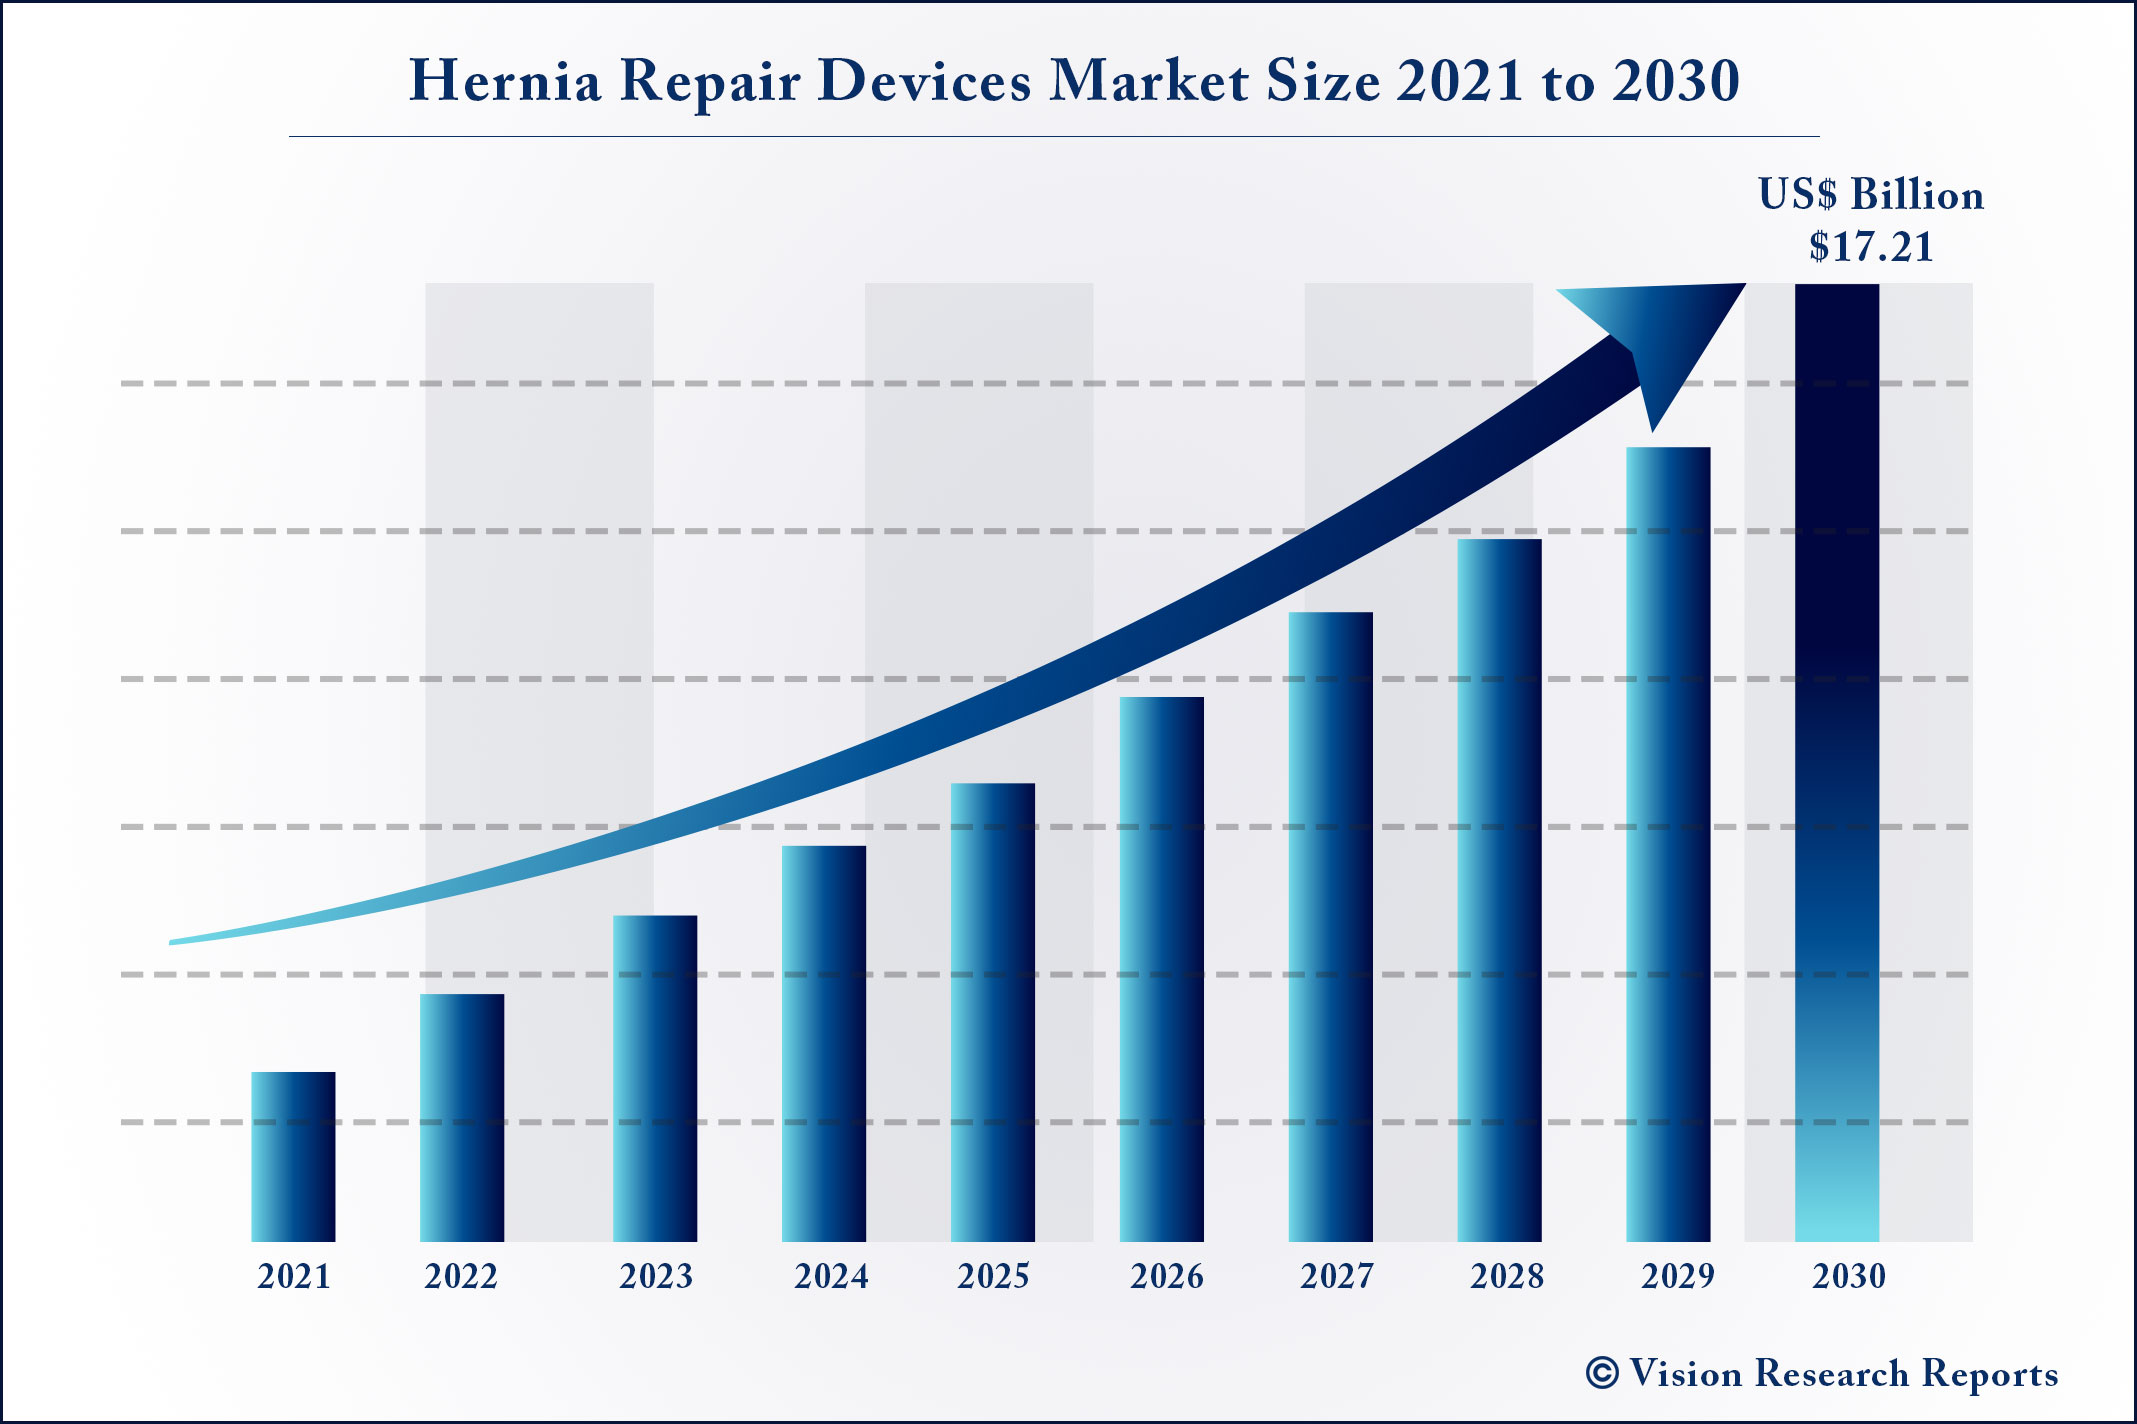 Hernia Repair Devices Market Size 2021 to 2030